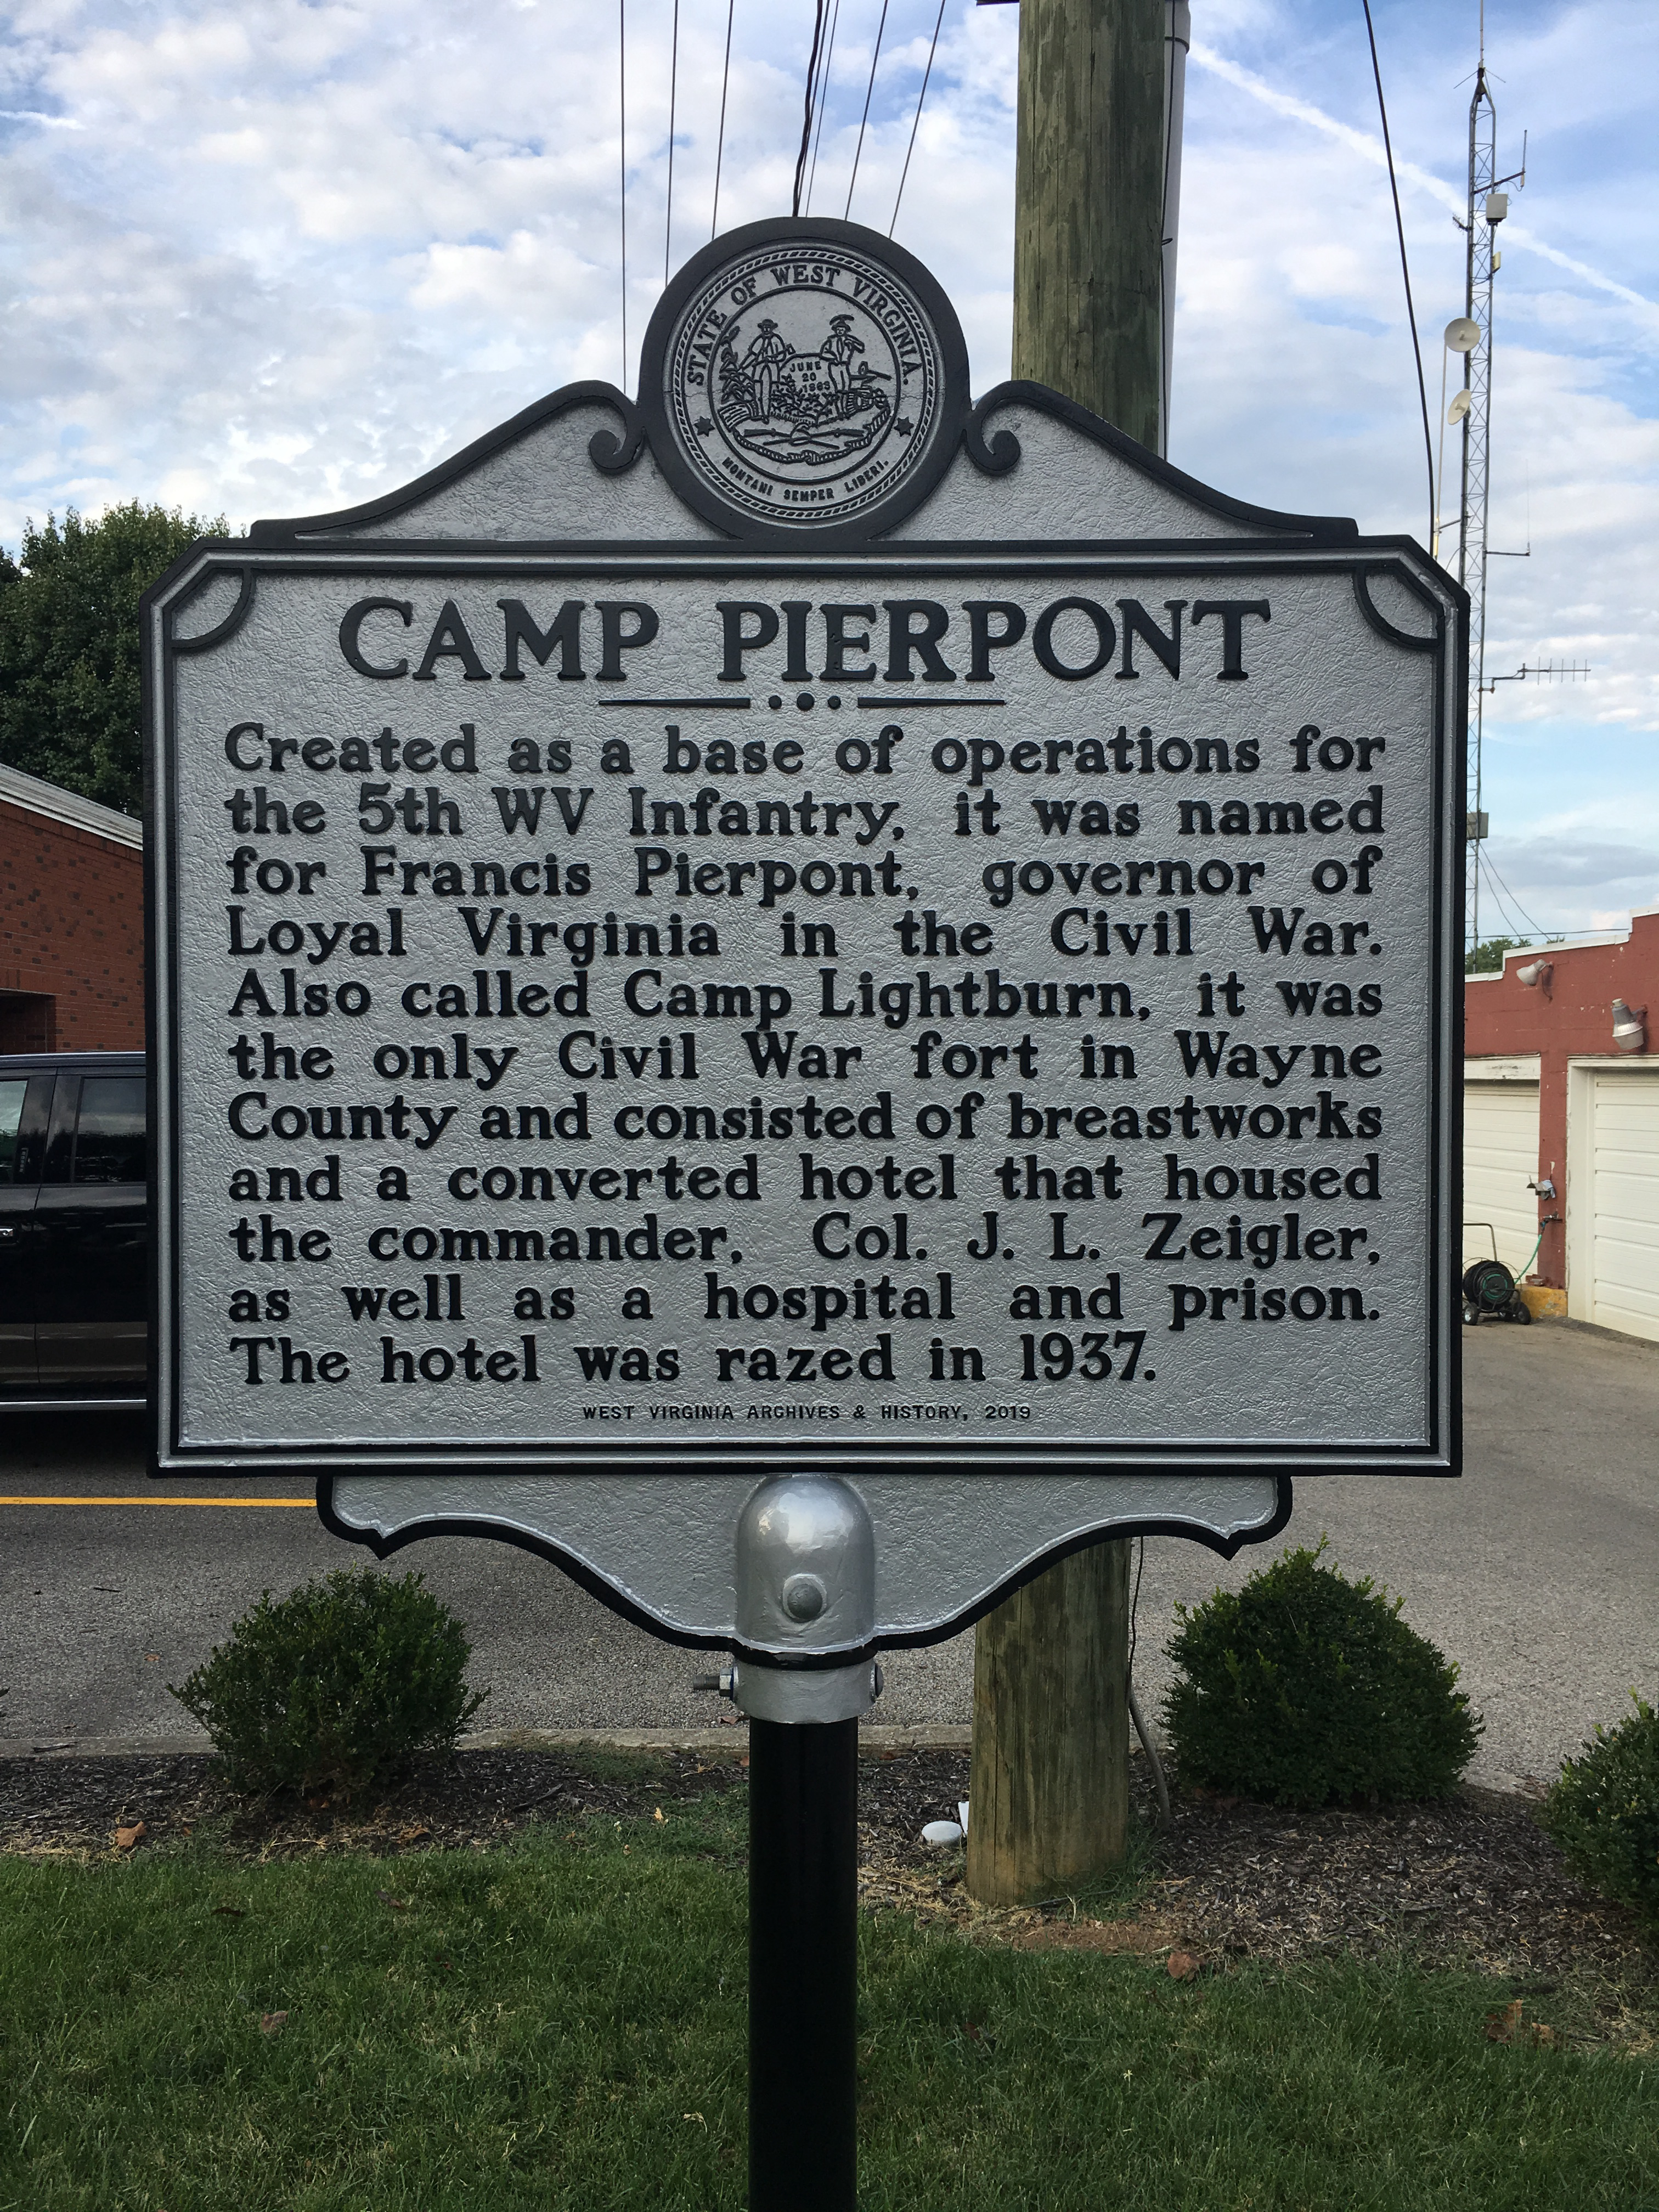 This historical marker commemorating Camp Pierpont was placed beside the municipal building in 2019.